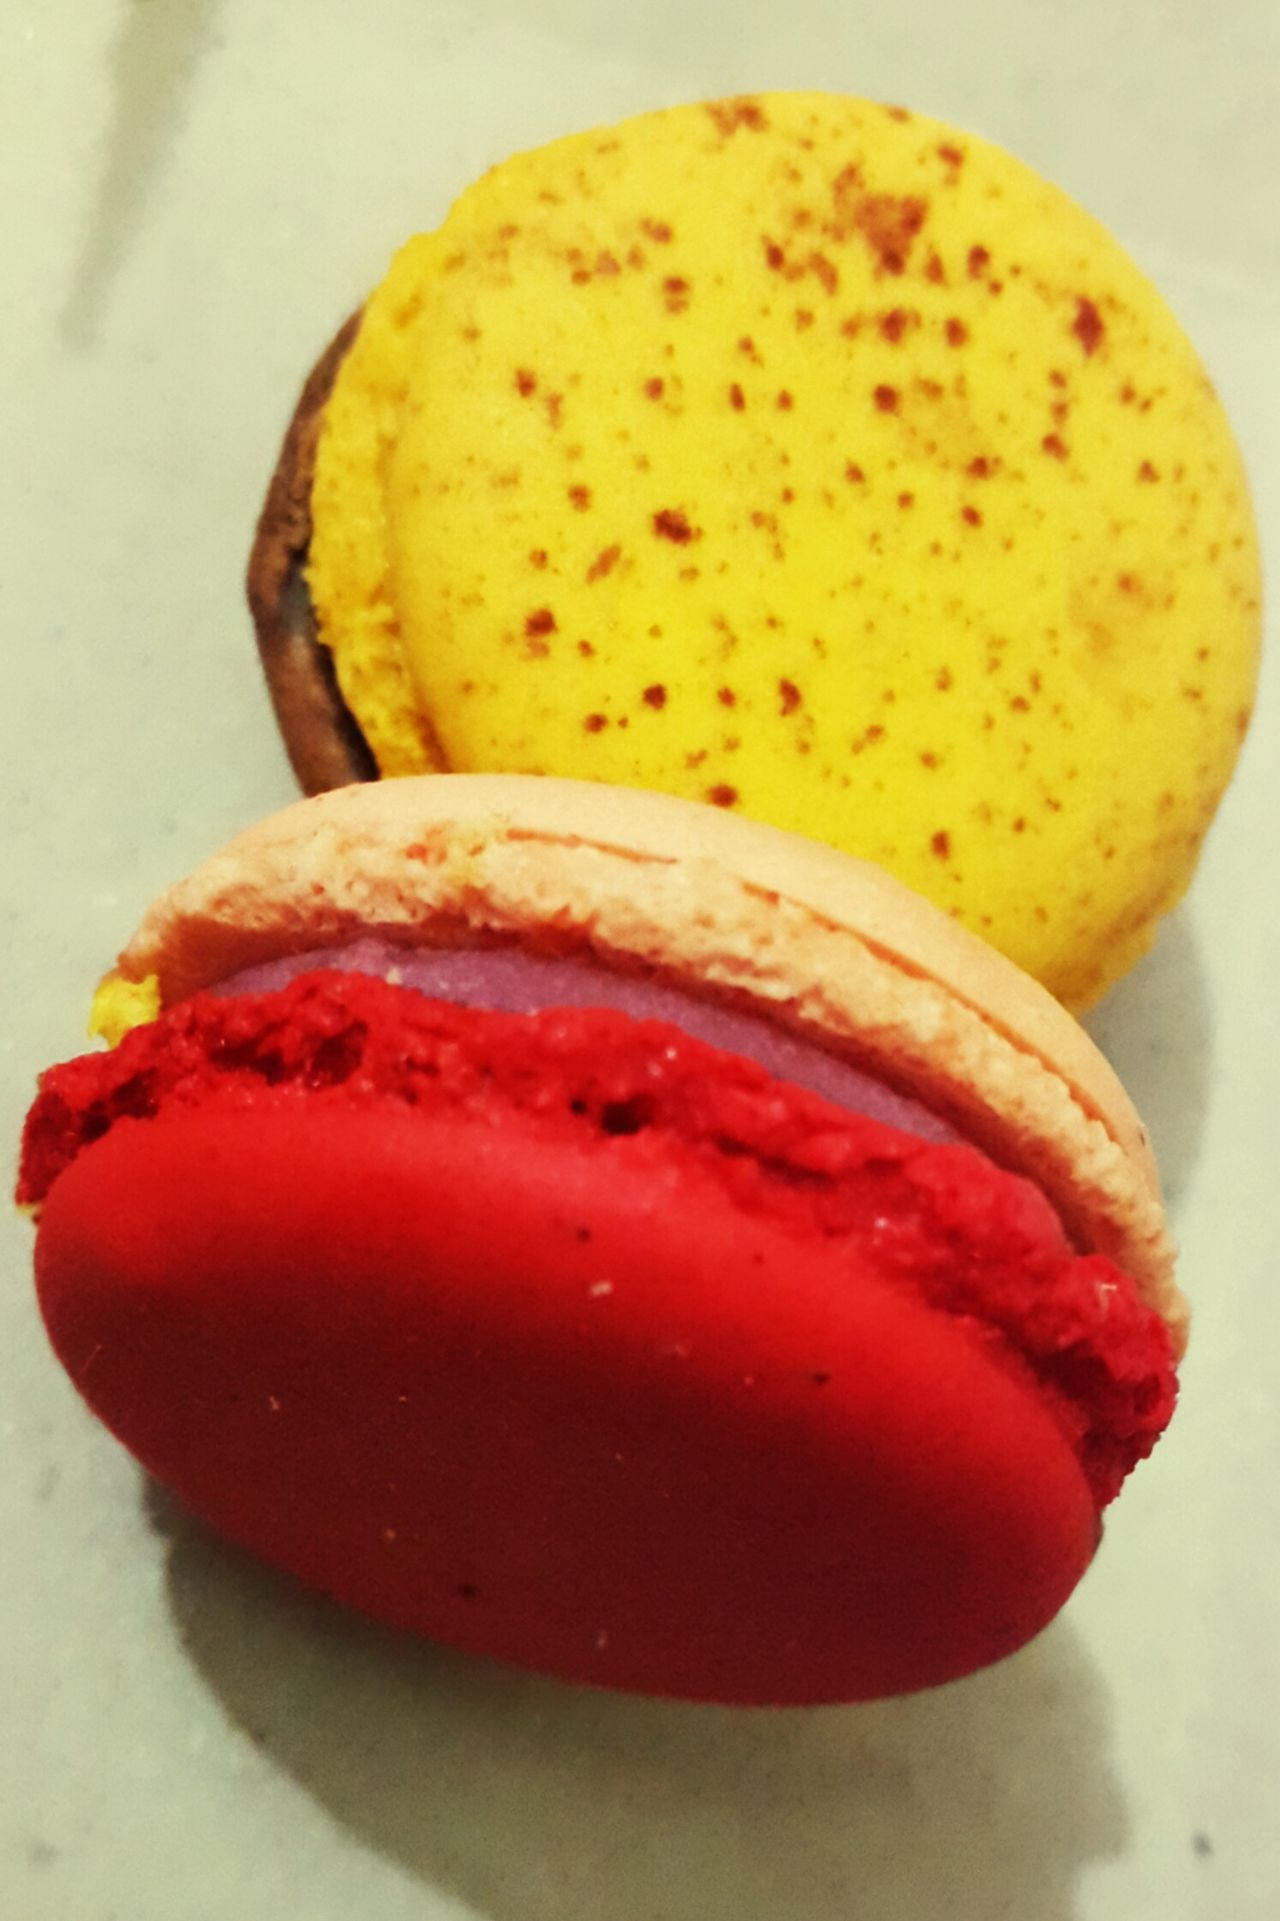 Life is short, eat desserts fir St😋 Macroons Macroonday Yellow Red No People Close-up Indoors  Food Ready-to-eat Day Desserts! Deserts Around The World Dessertoftheday Dessert Time! Dessert Porn Dessertstagram Sweet Food Sweetthooth Love It Red Yellow